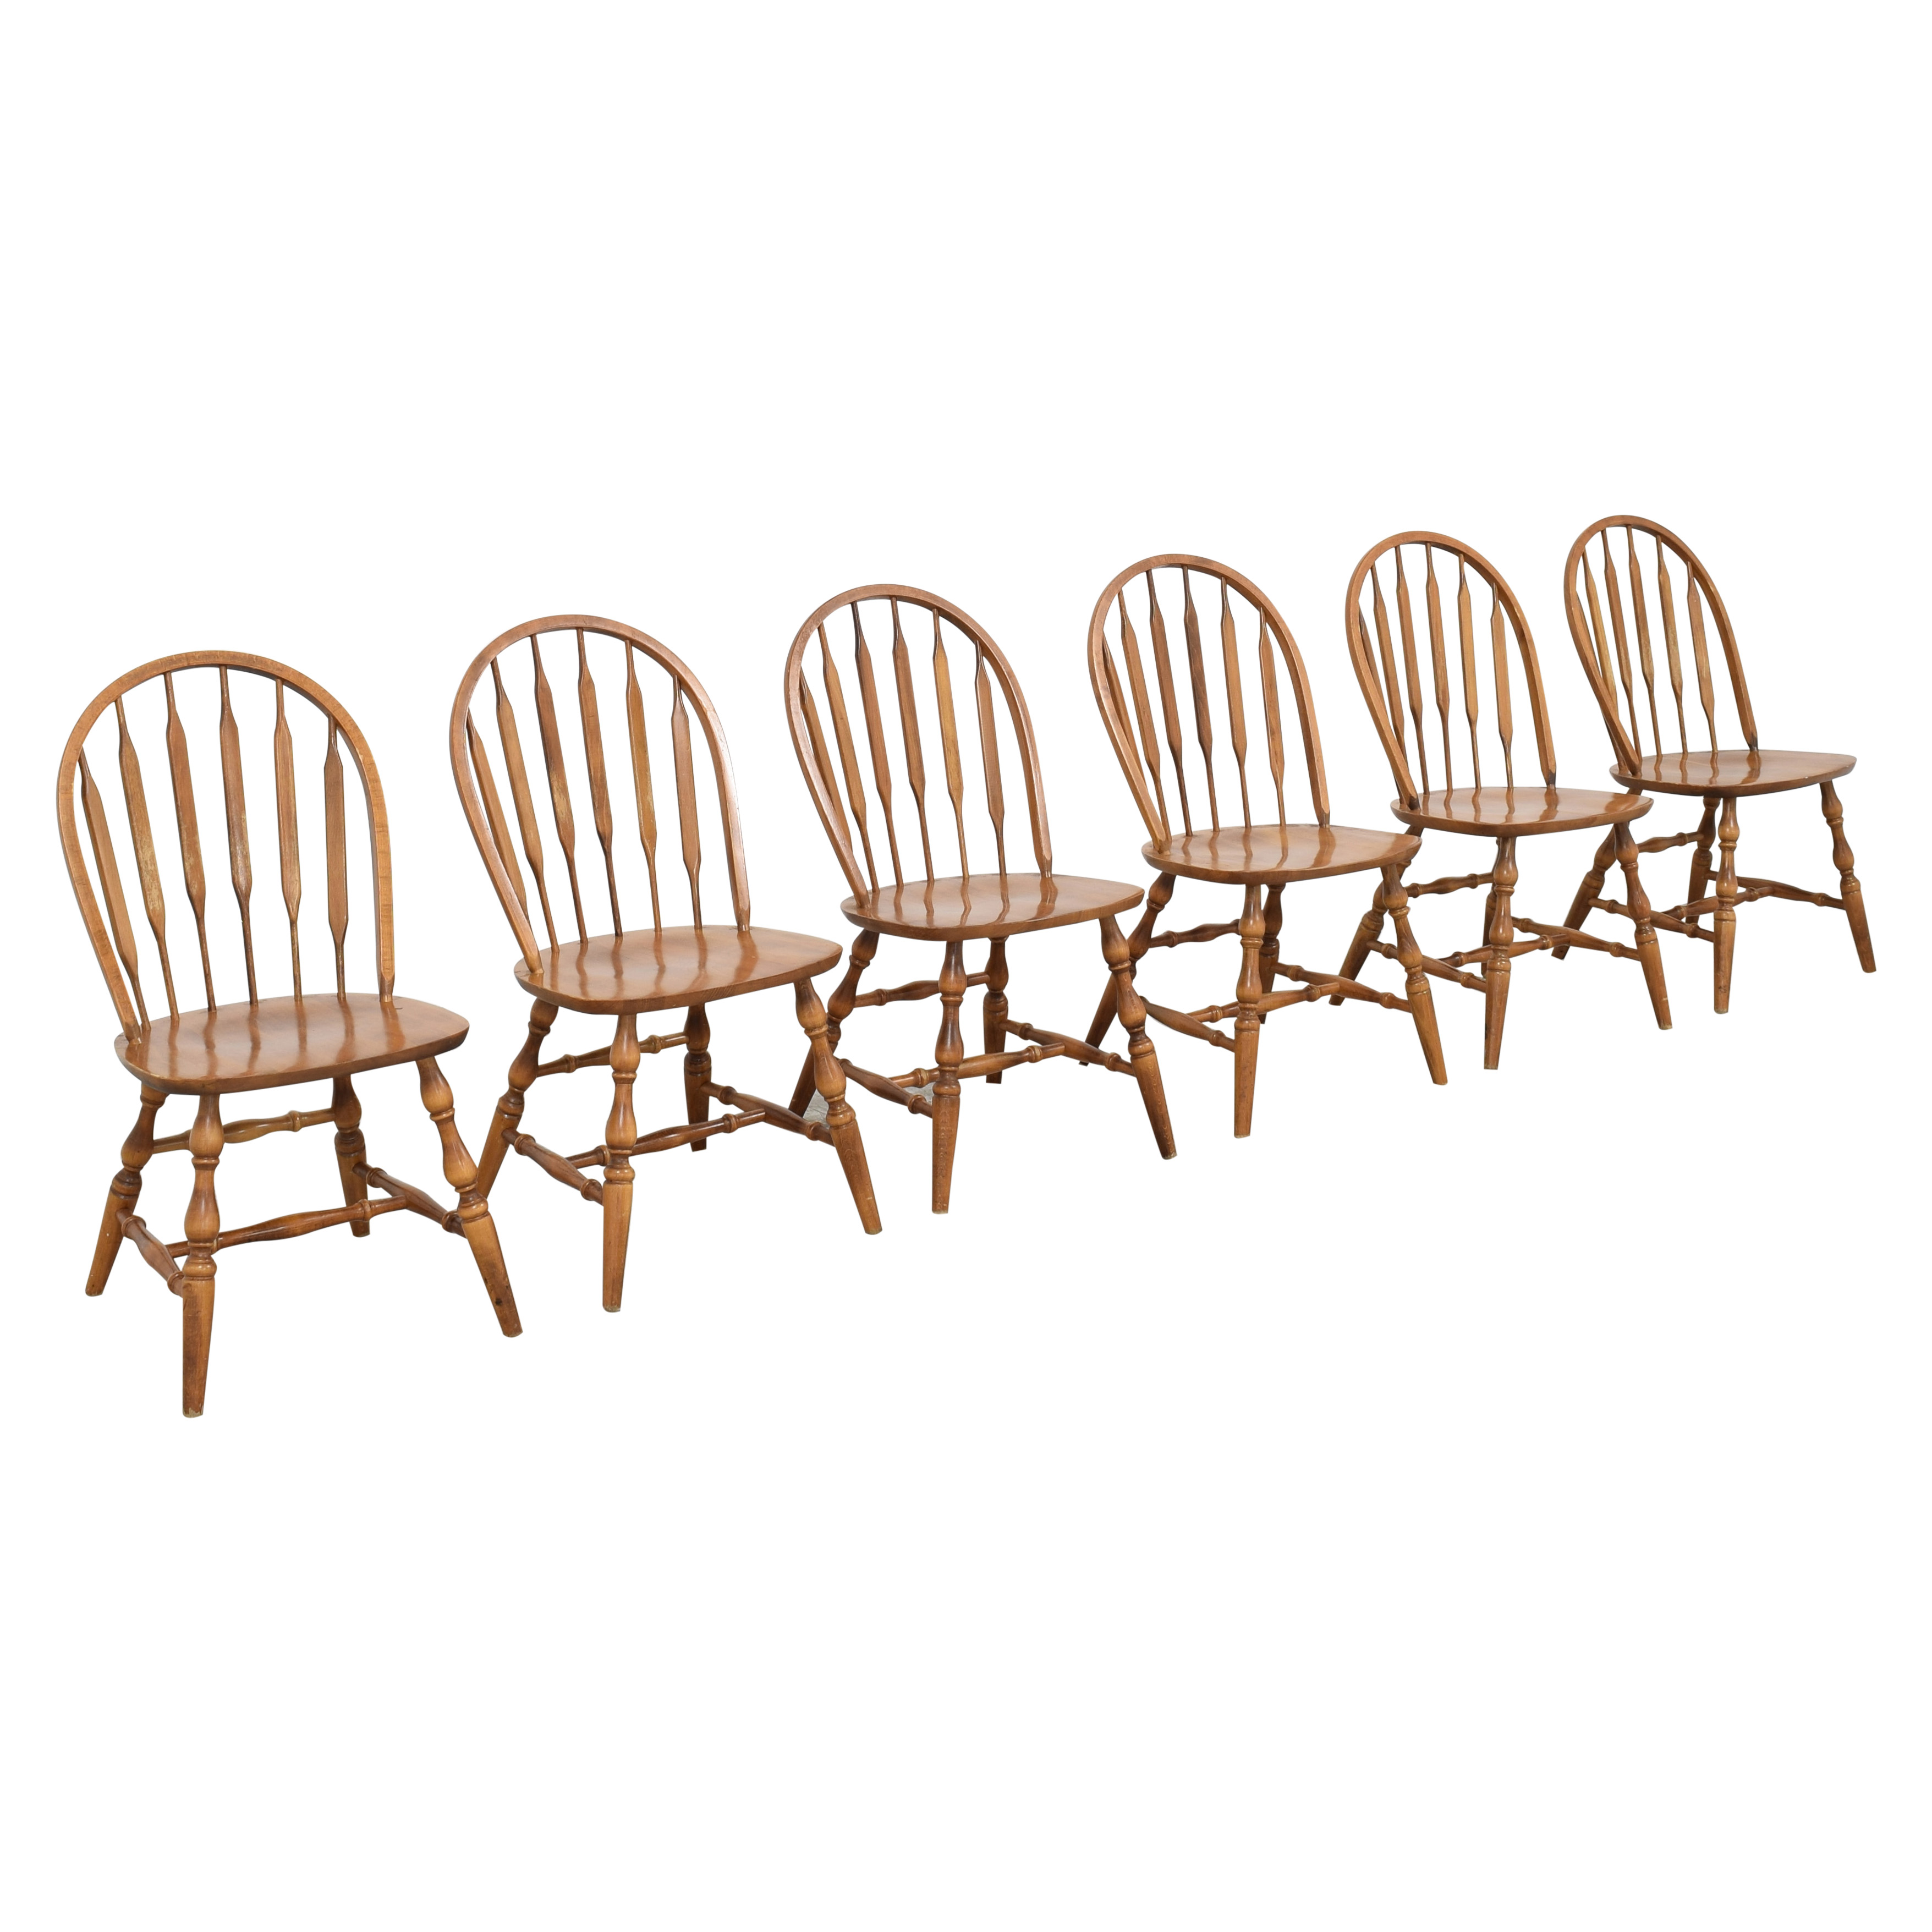 Wood Dining Chairs on sale